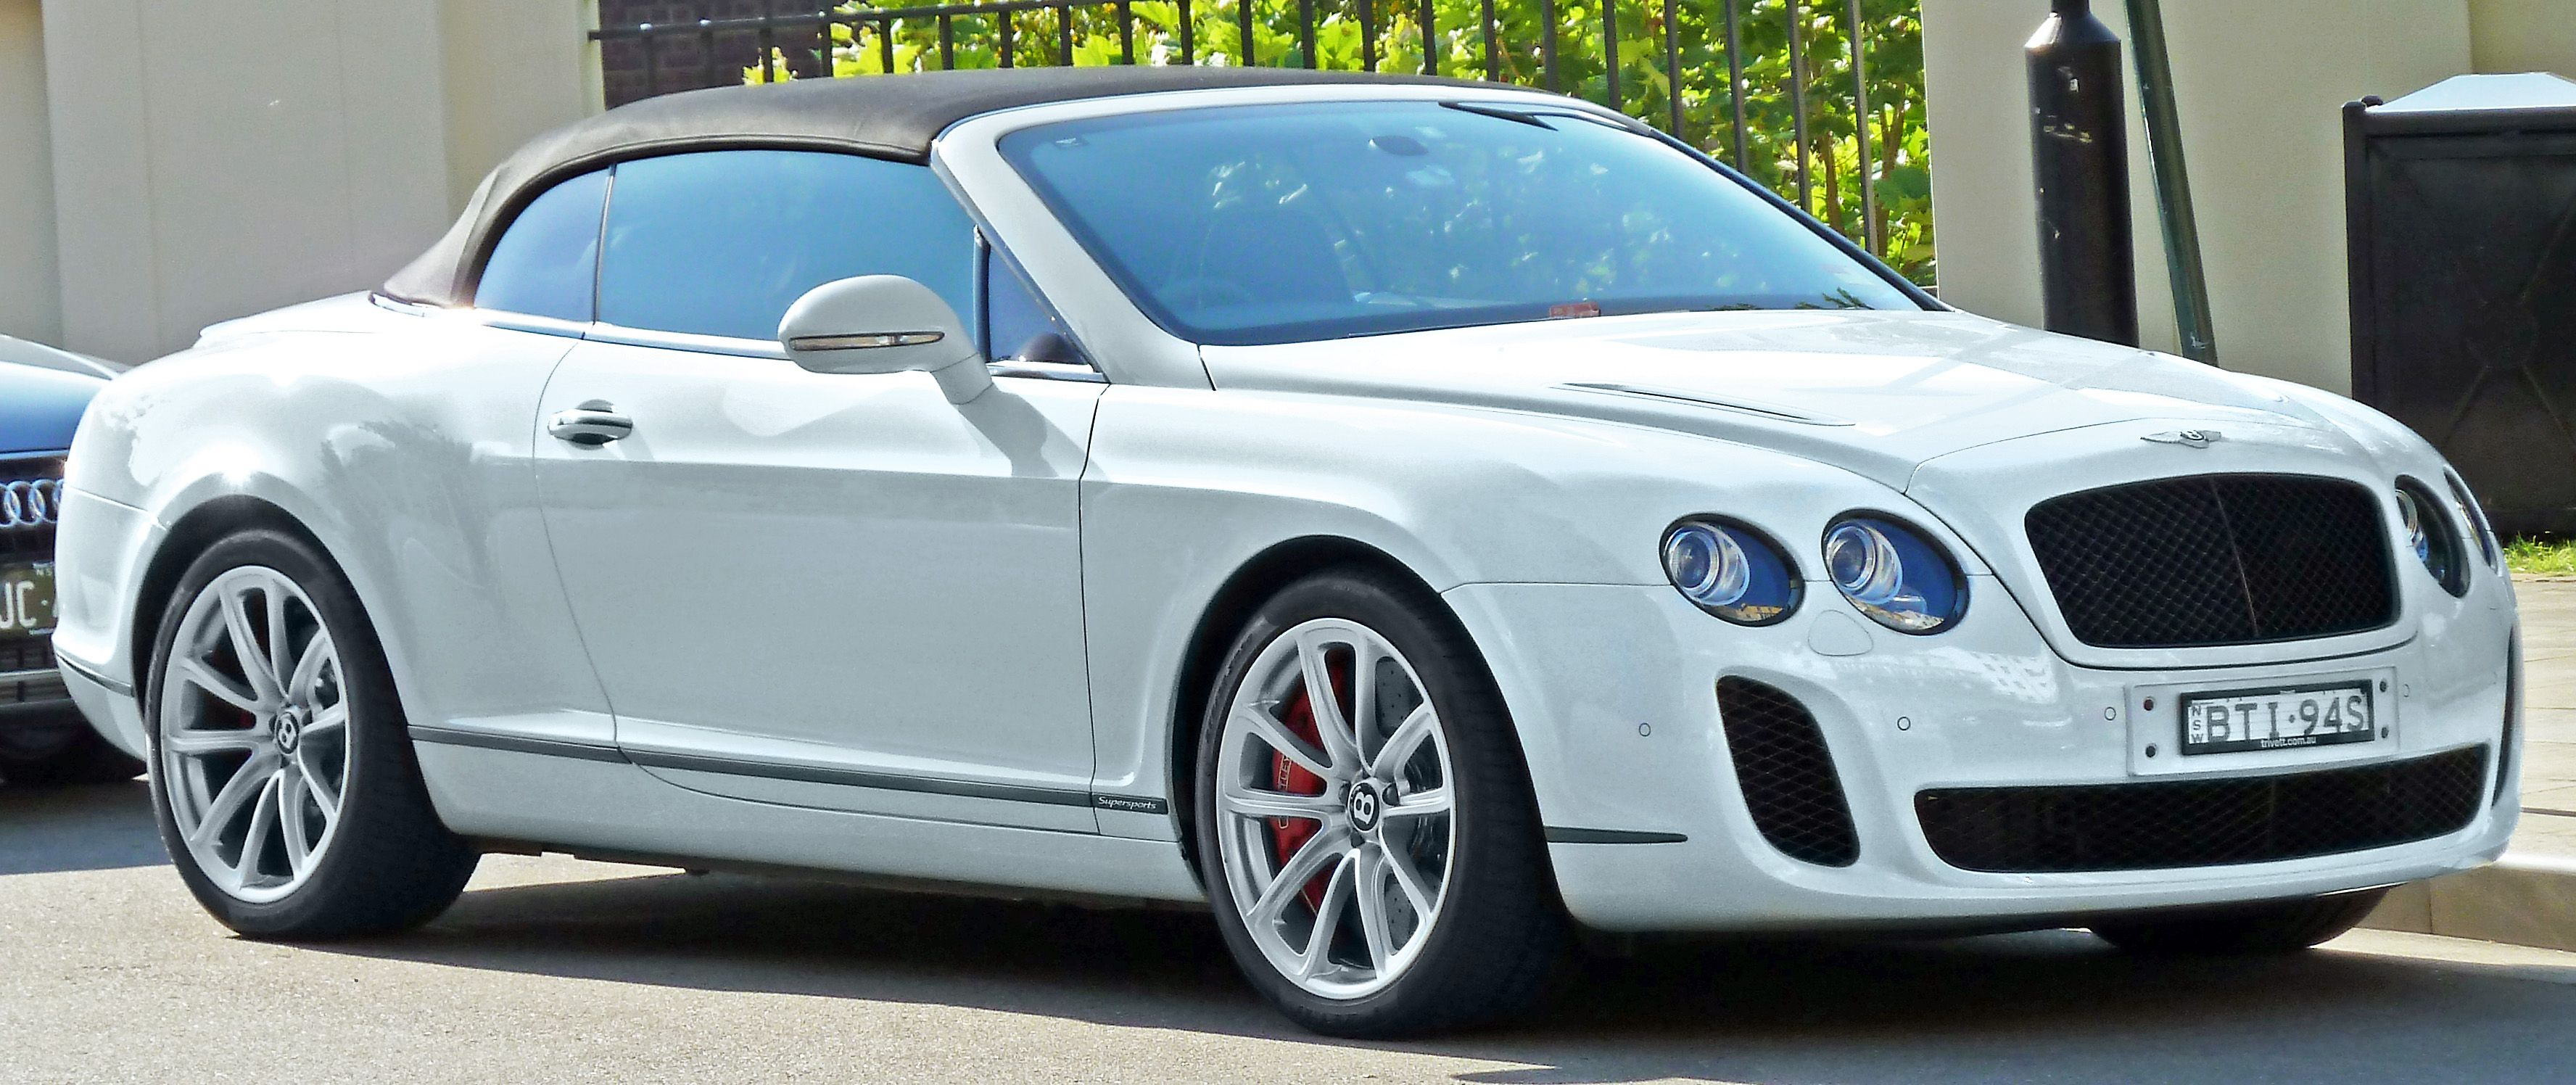 revealed articles en continental car gt guide the bentley